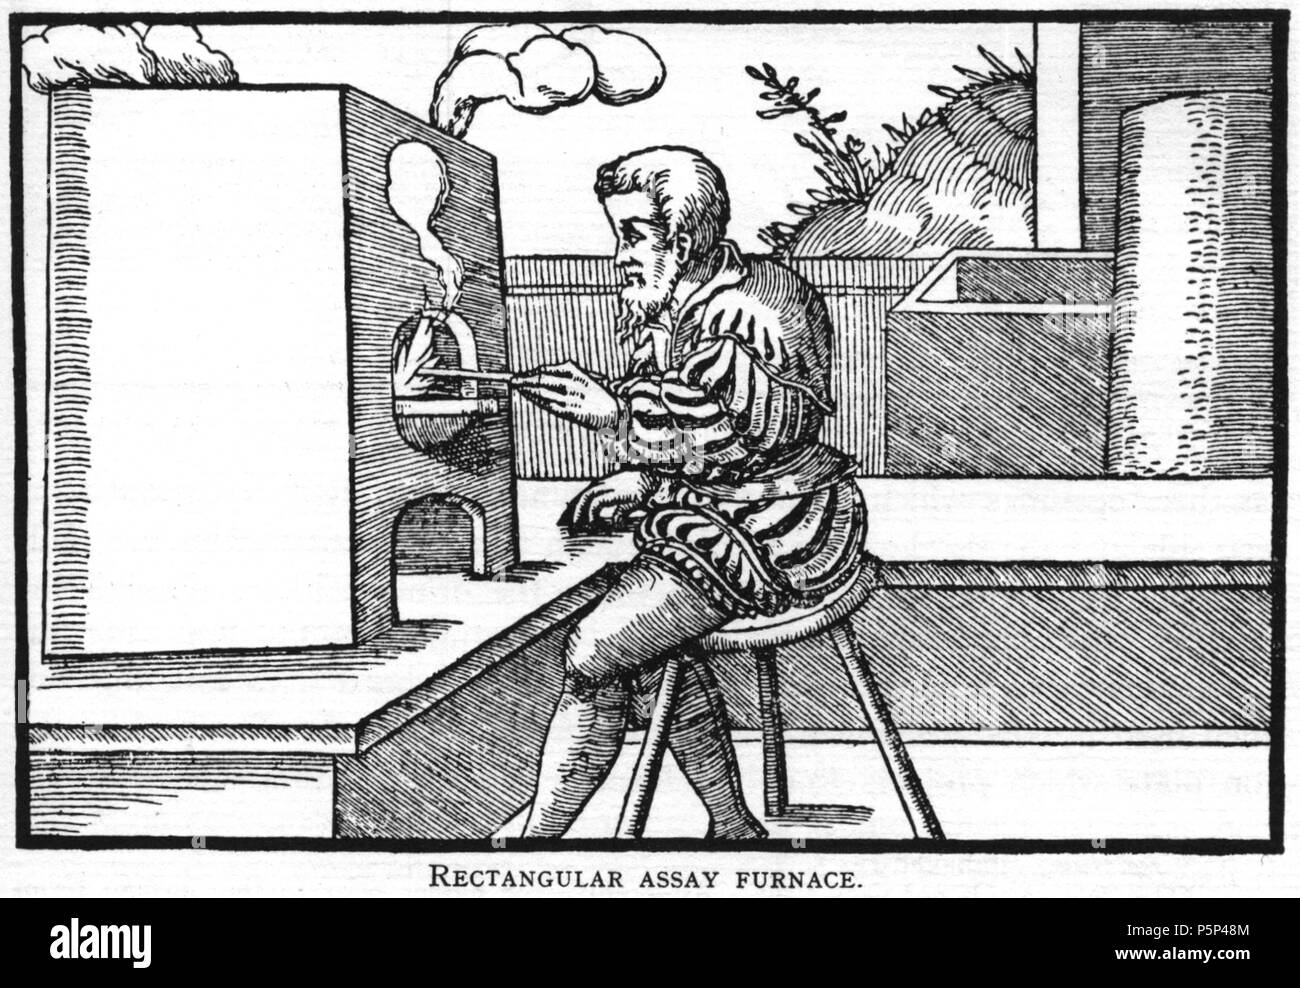 N/A. Woodcut illustration from De re metallica by Georgius Agricola. This is a 300dpi scan from the 1950 Dover edition of the 1913 Hoover translation of the 1556 reference. The Dover edition has slightly smaller size prints than the Hoover (which is a rare book). The woodcuts were recreated for the 1913 printing. Filenames (except for the title page) indicate the chapter (2, 3, 5, etc.) followed by the sequential number of the illustration. 2 May 2005, 07:08:56. TCO (talk) 223 Book7-2 - Stock Image